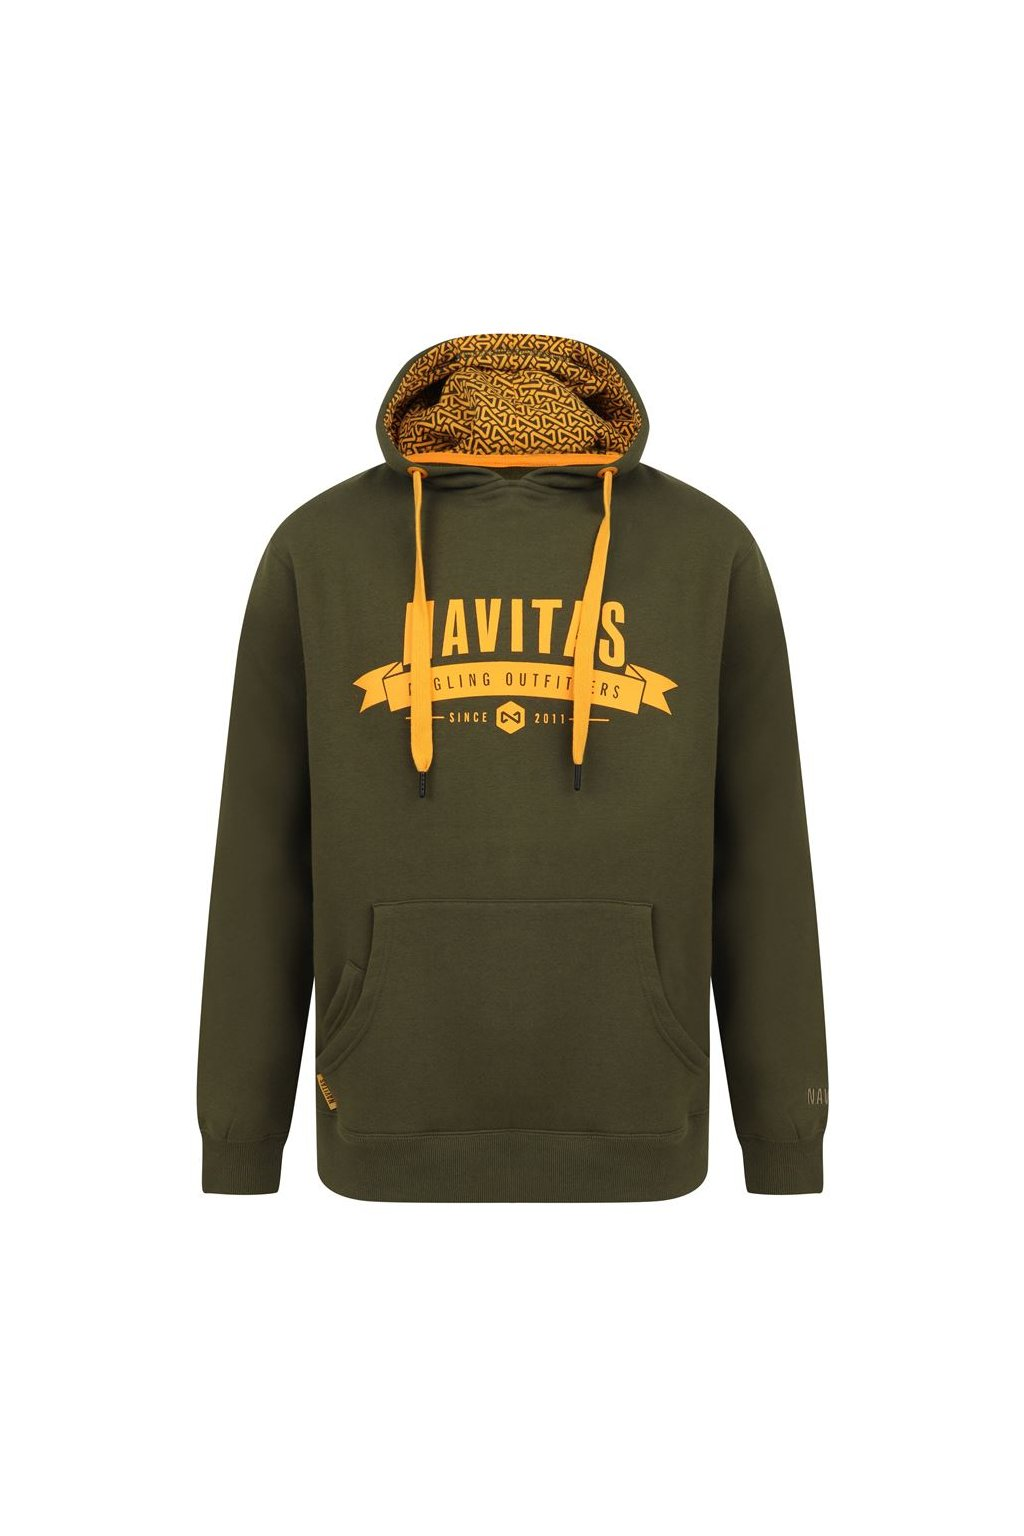 Navitas: Mikina Outfitters Hoody Green Velikost M